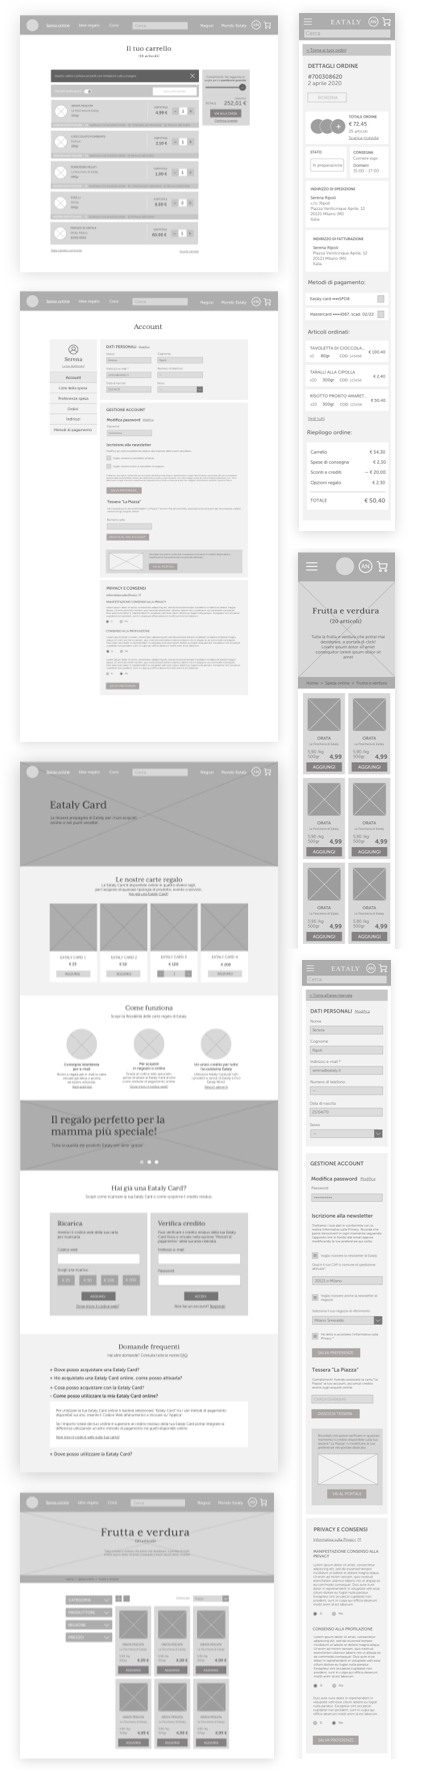 Examples of wireframes